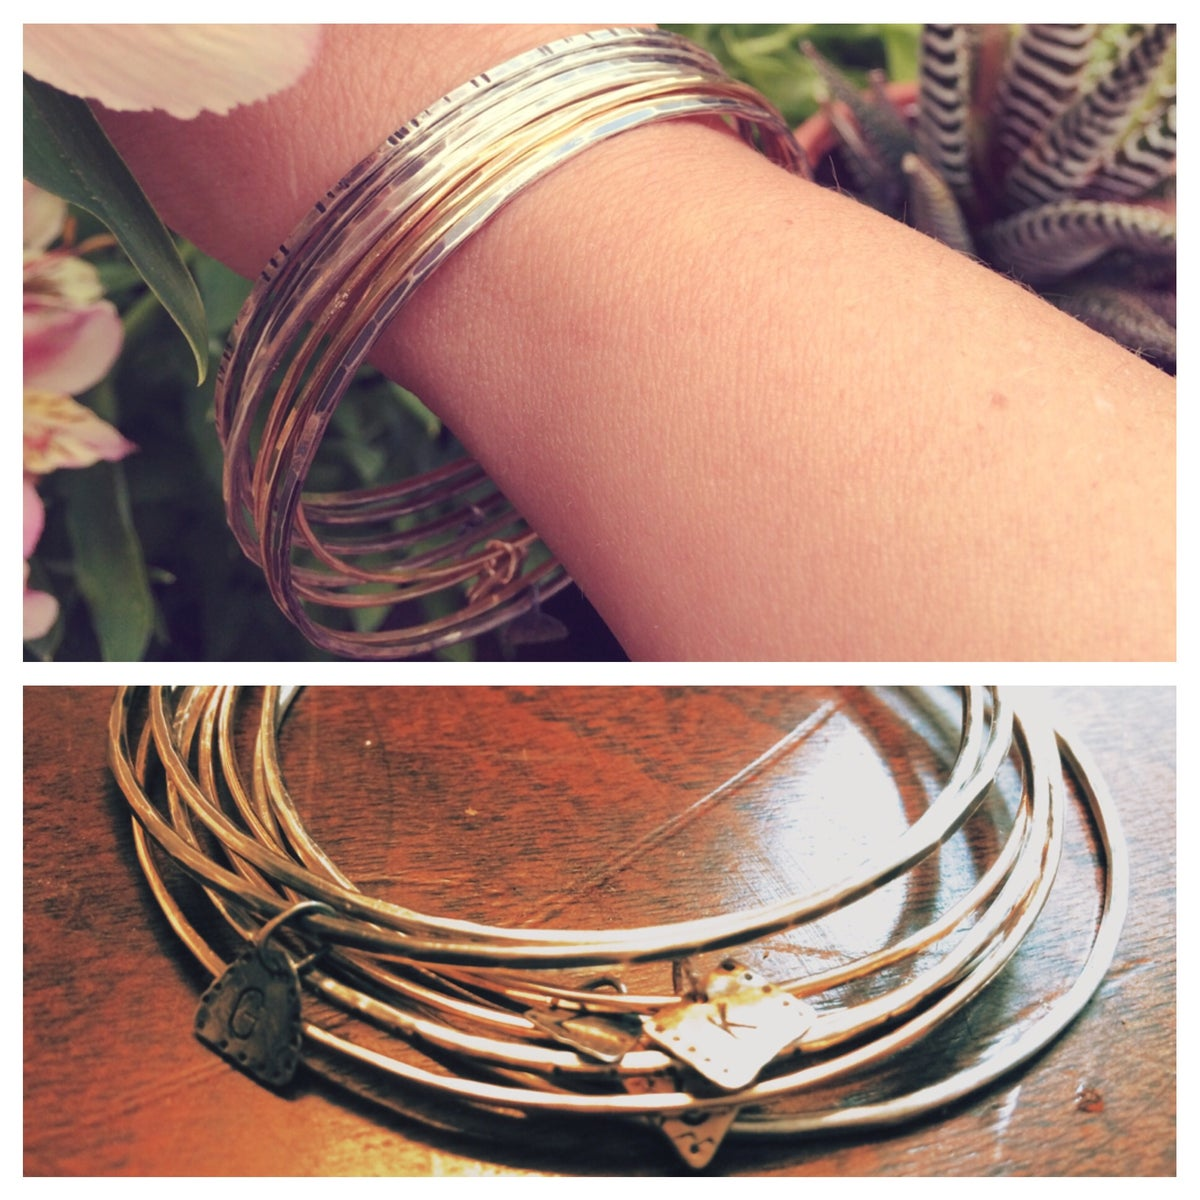 Image of Sterling Silver and 14k Gold Bangles w/ custom Monogram Charm